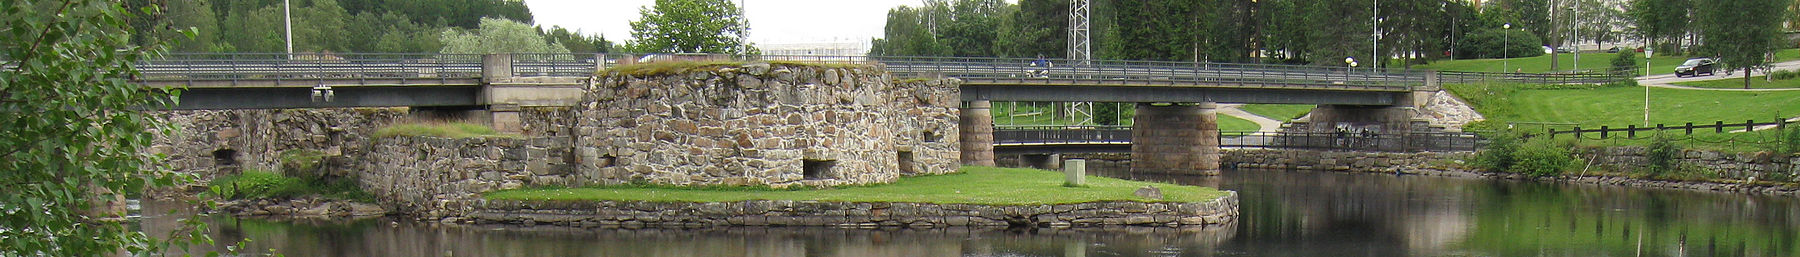 Kajaani banner Bridge.jpg